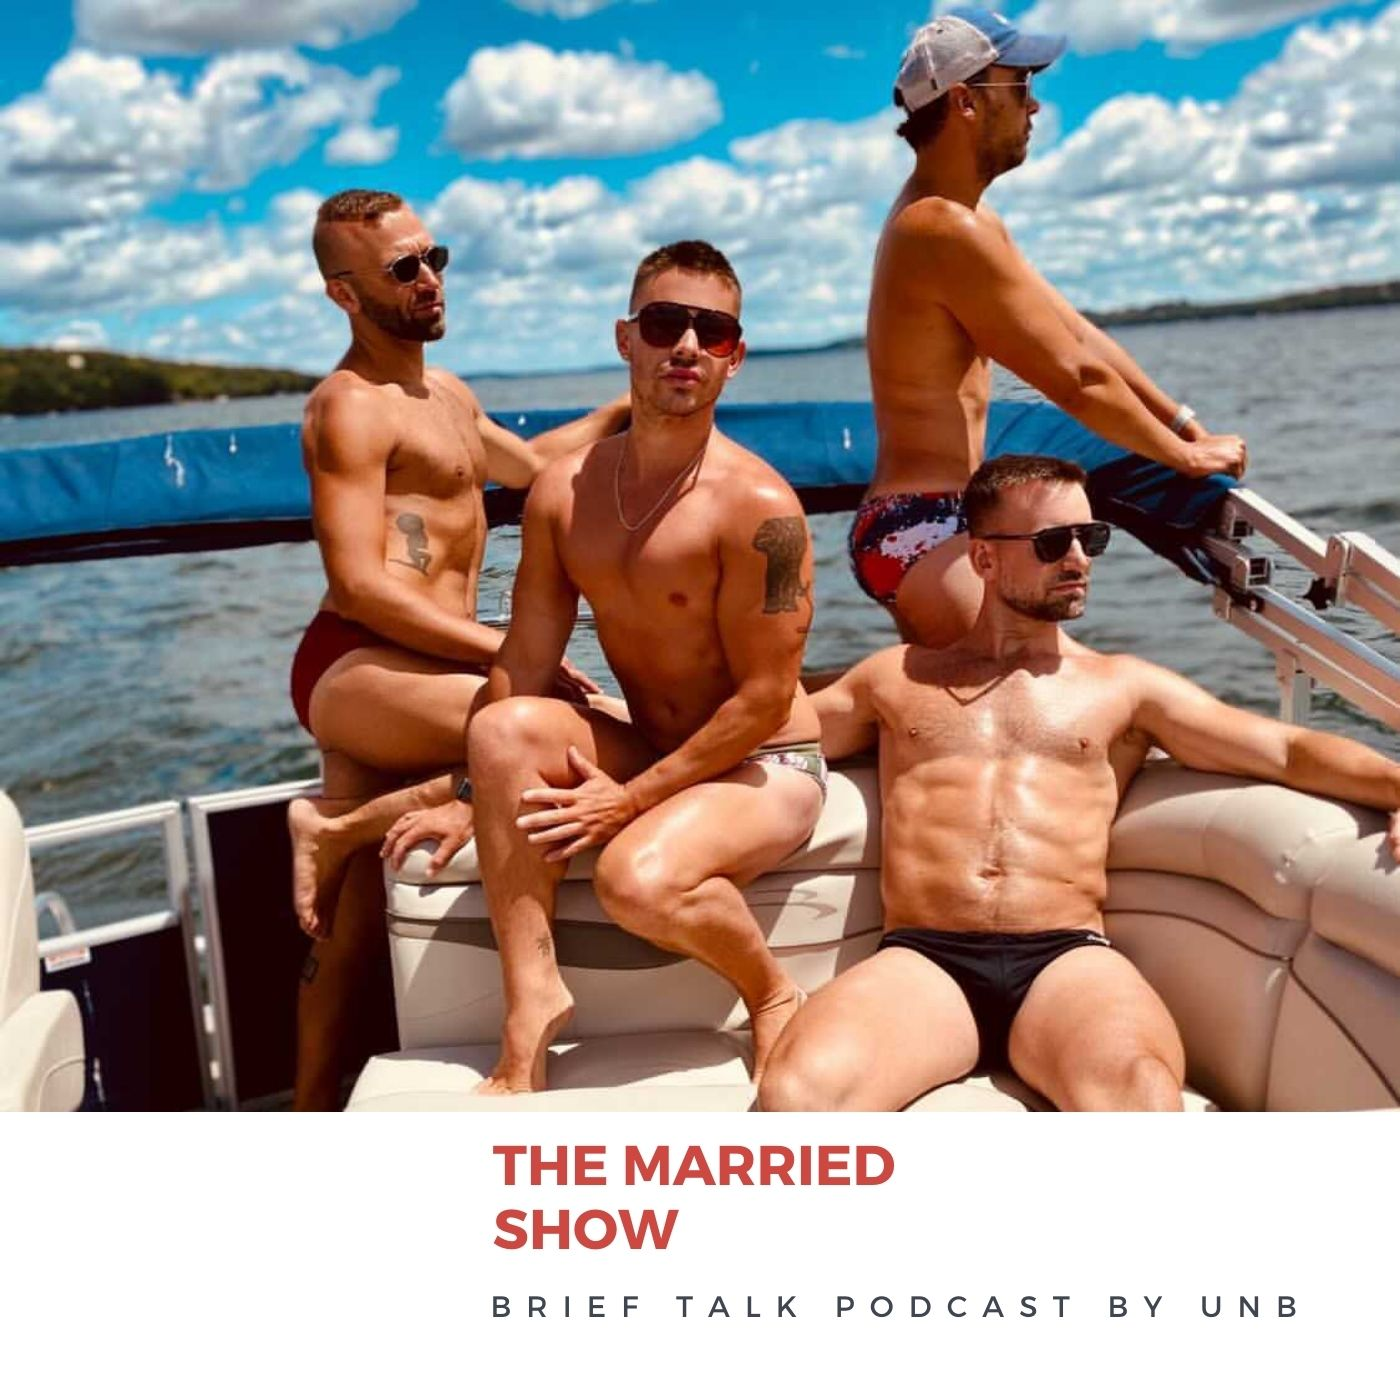 Brief Talk Podcast - Married Edition